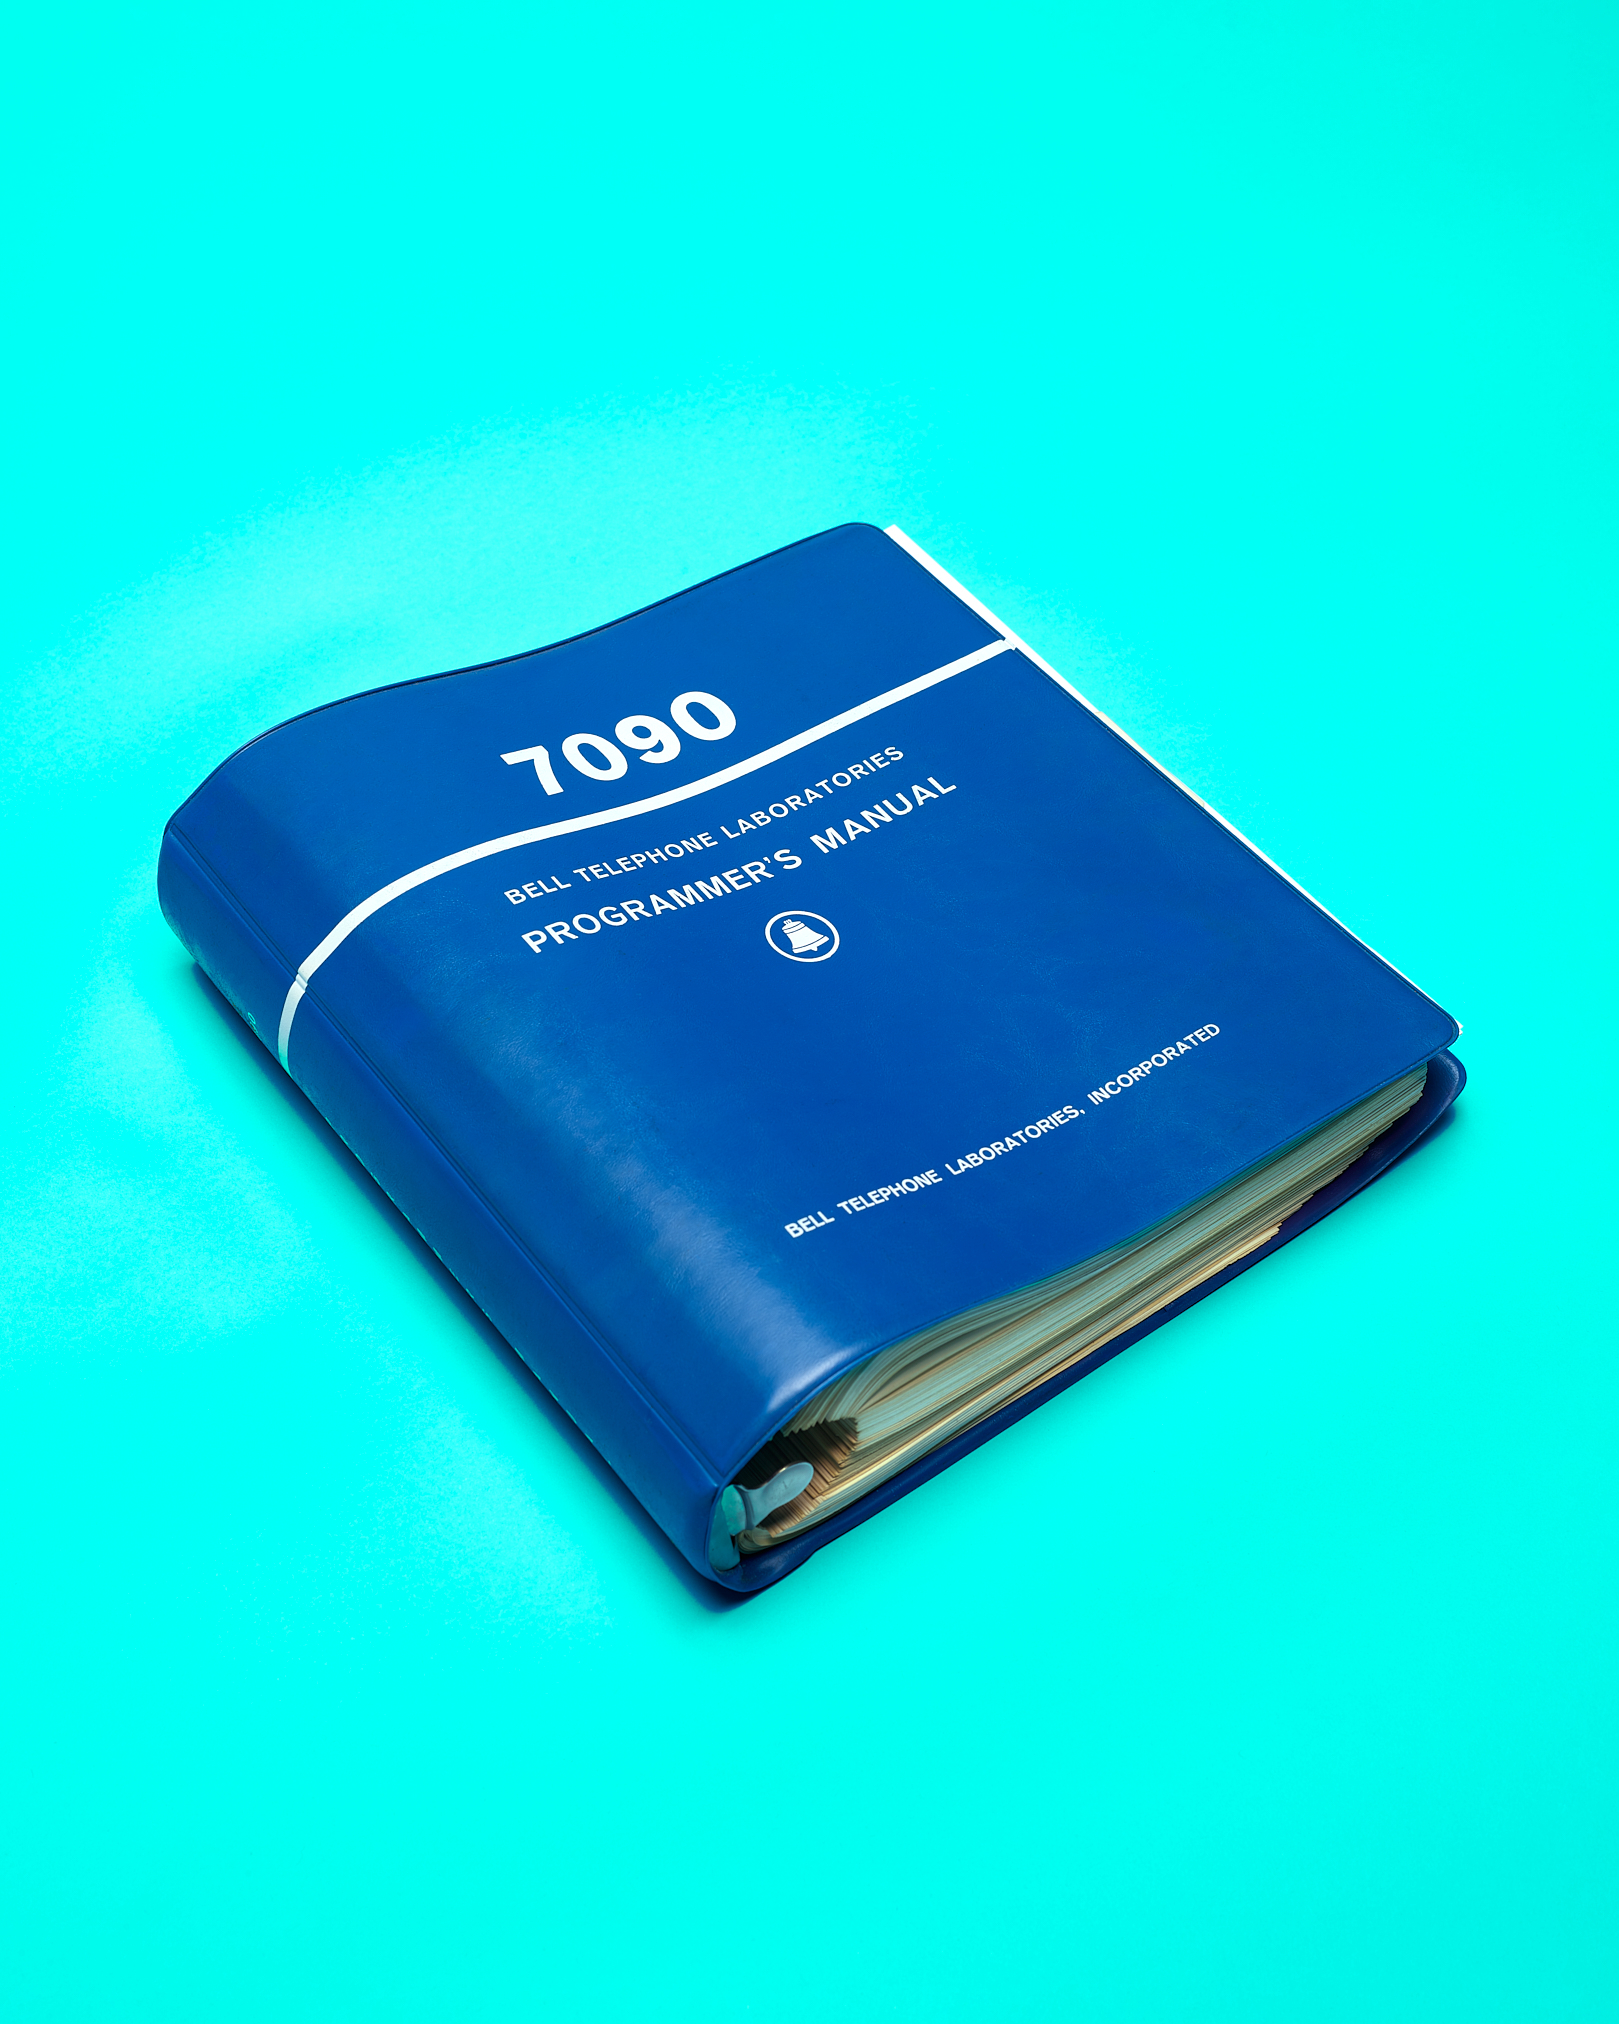 """The """"Blue Book"""" Programming Manual by Peter Adams."""